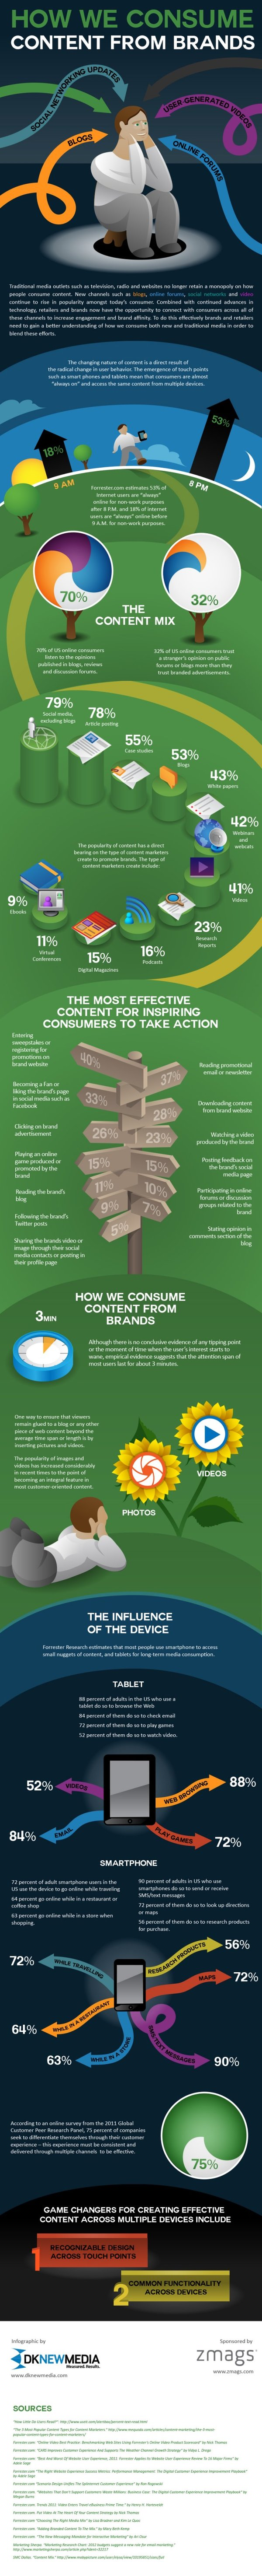 Branded Content Infographic